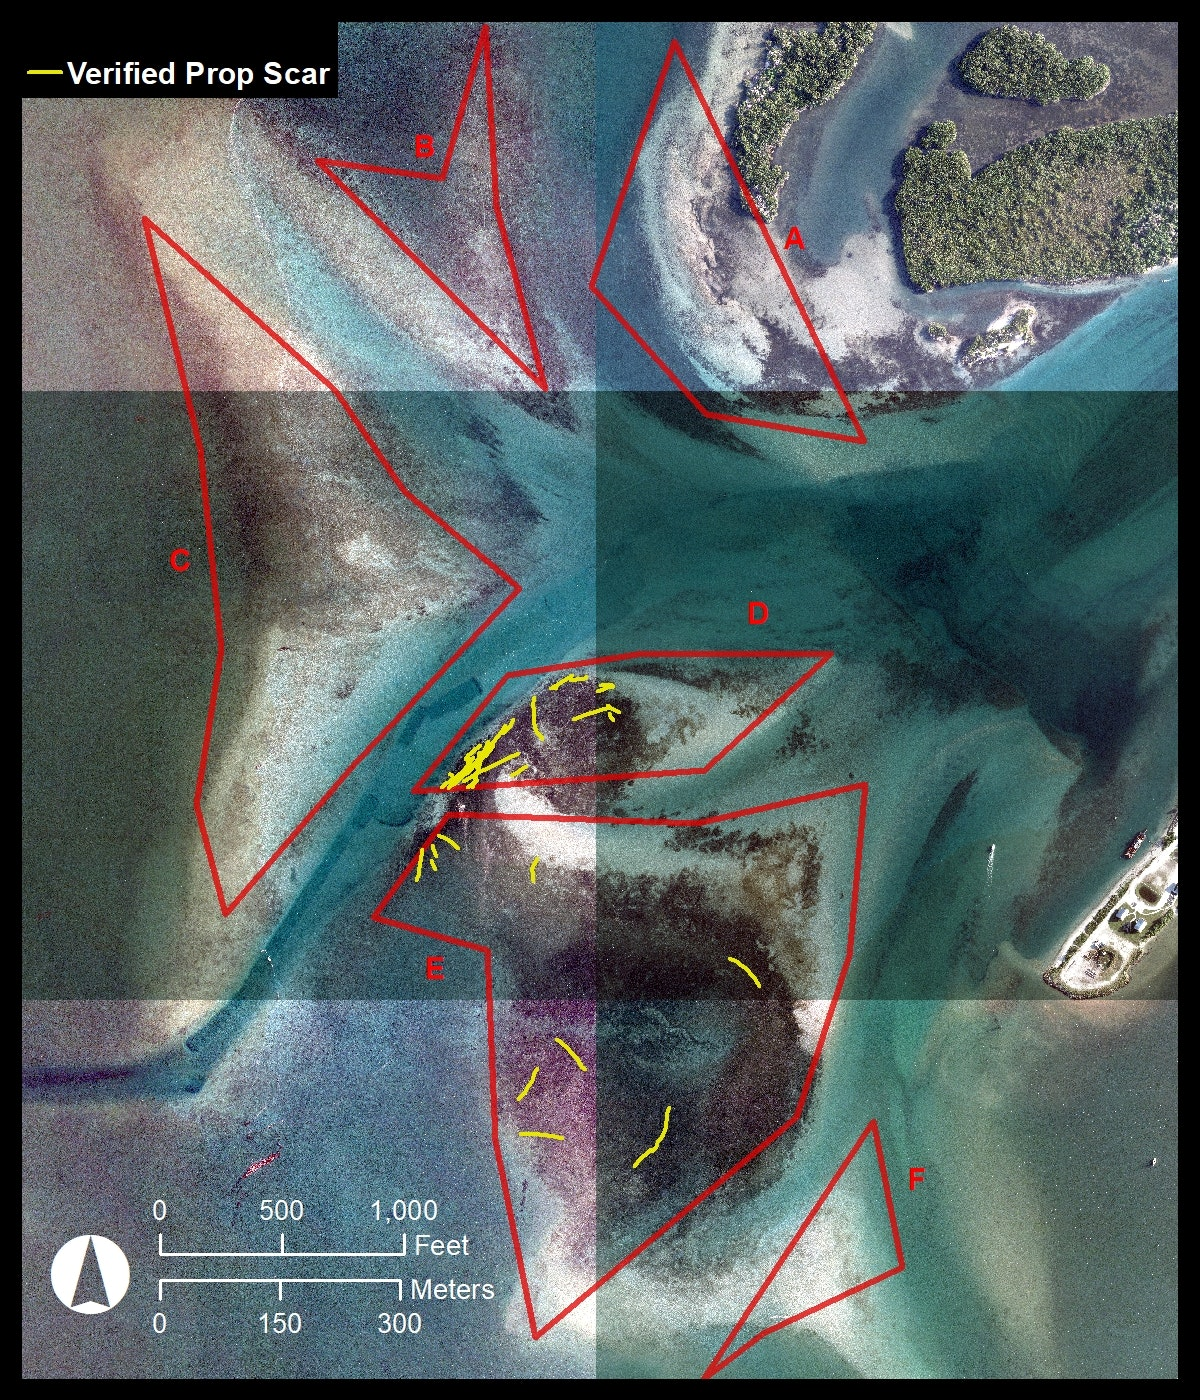 aerial map looking straight down of Sebastian Inlet flood shoal with 6 zone boundaries and indicators where prop scars were found